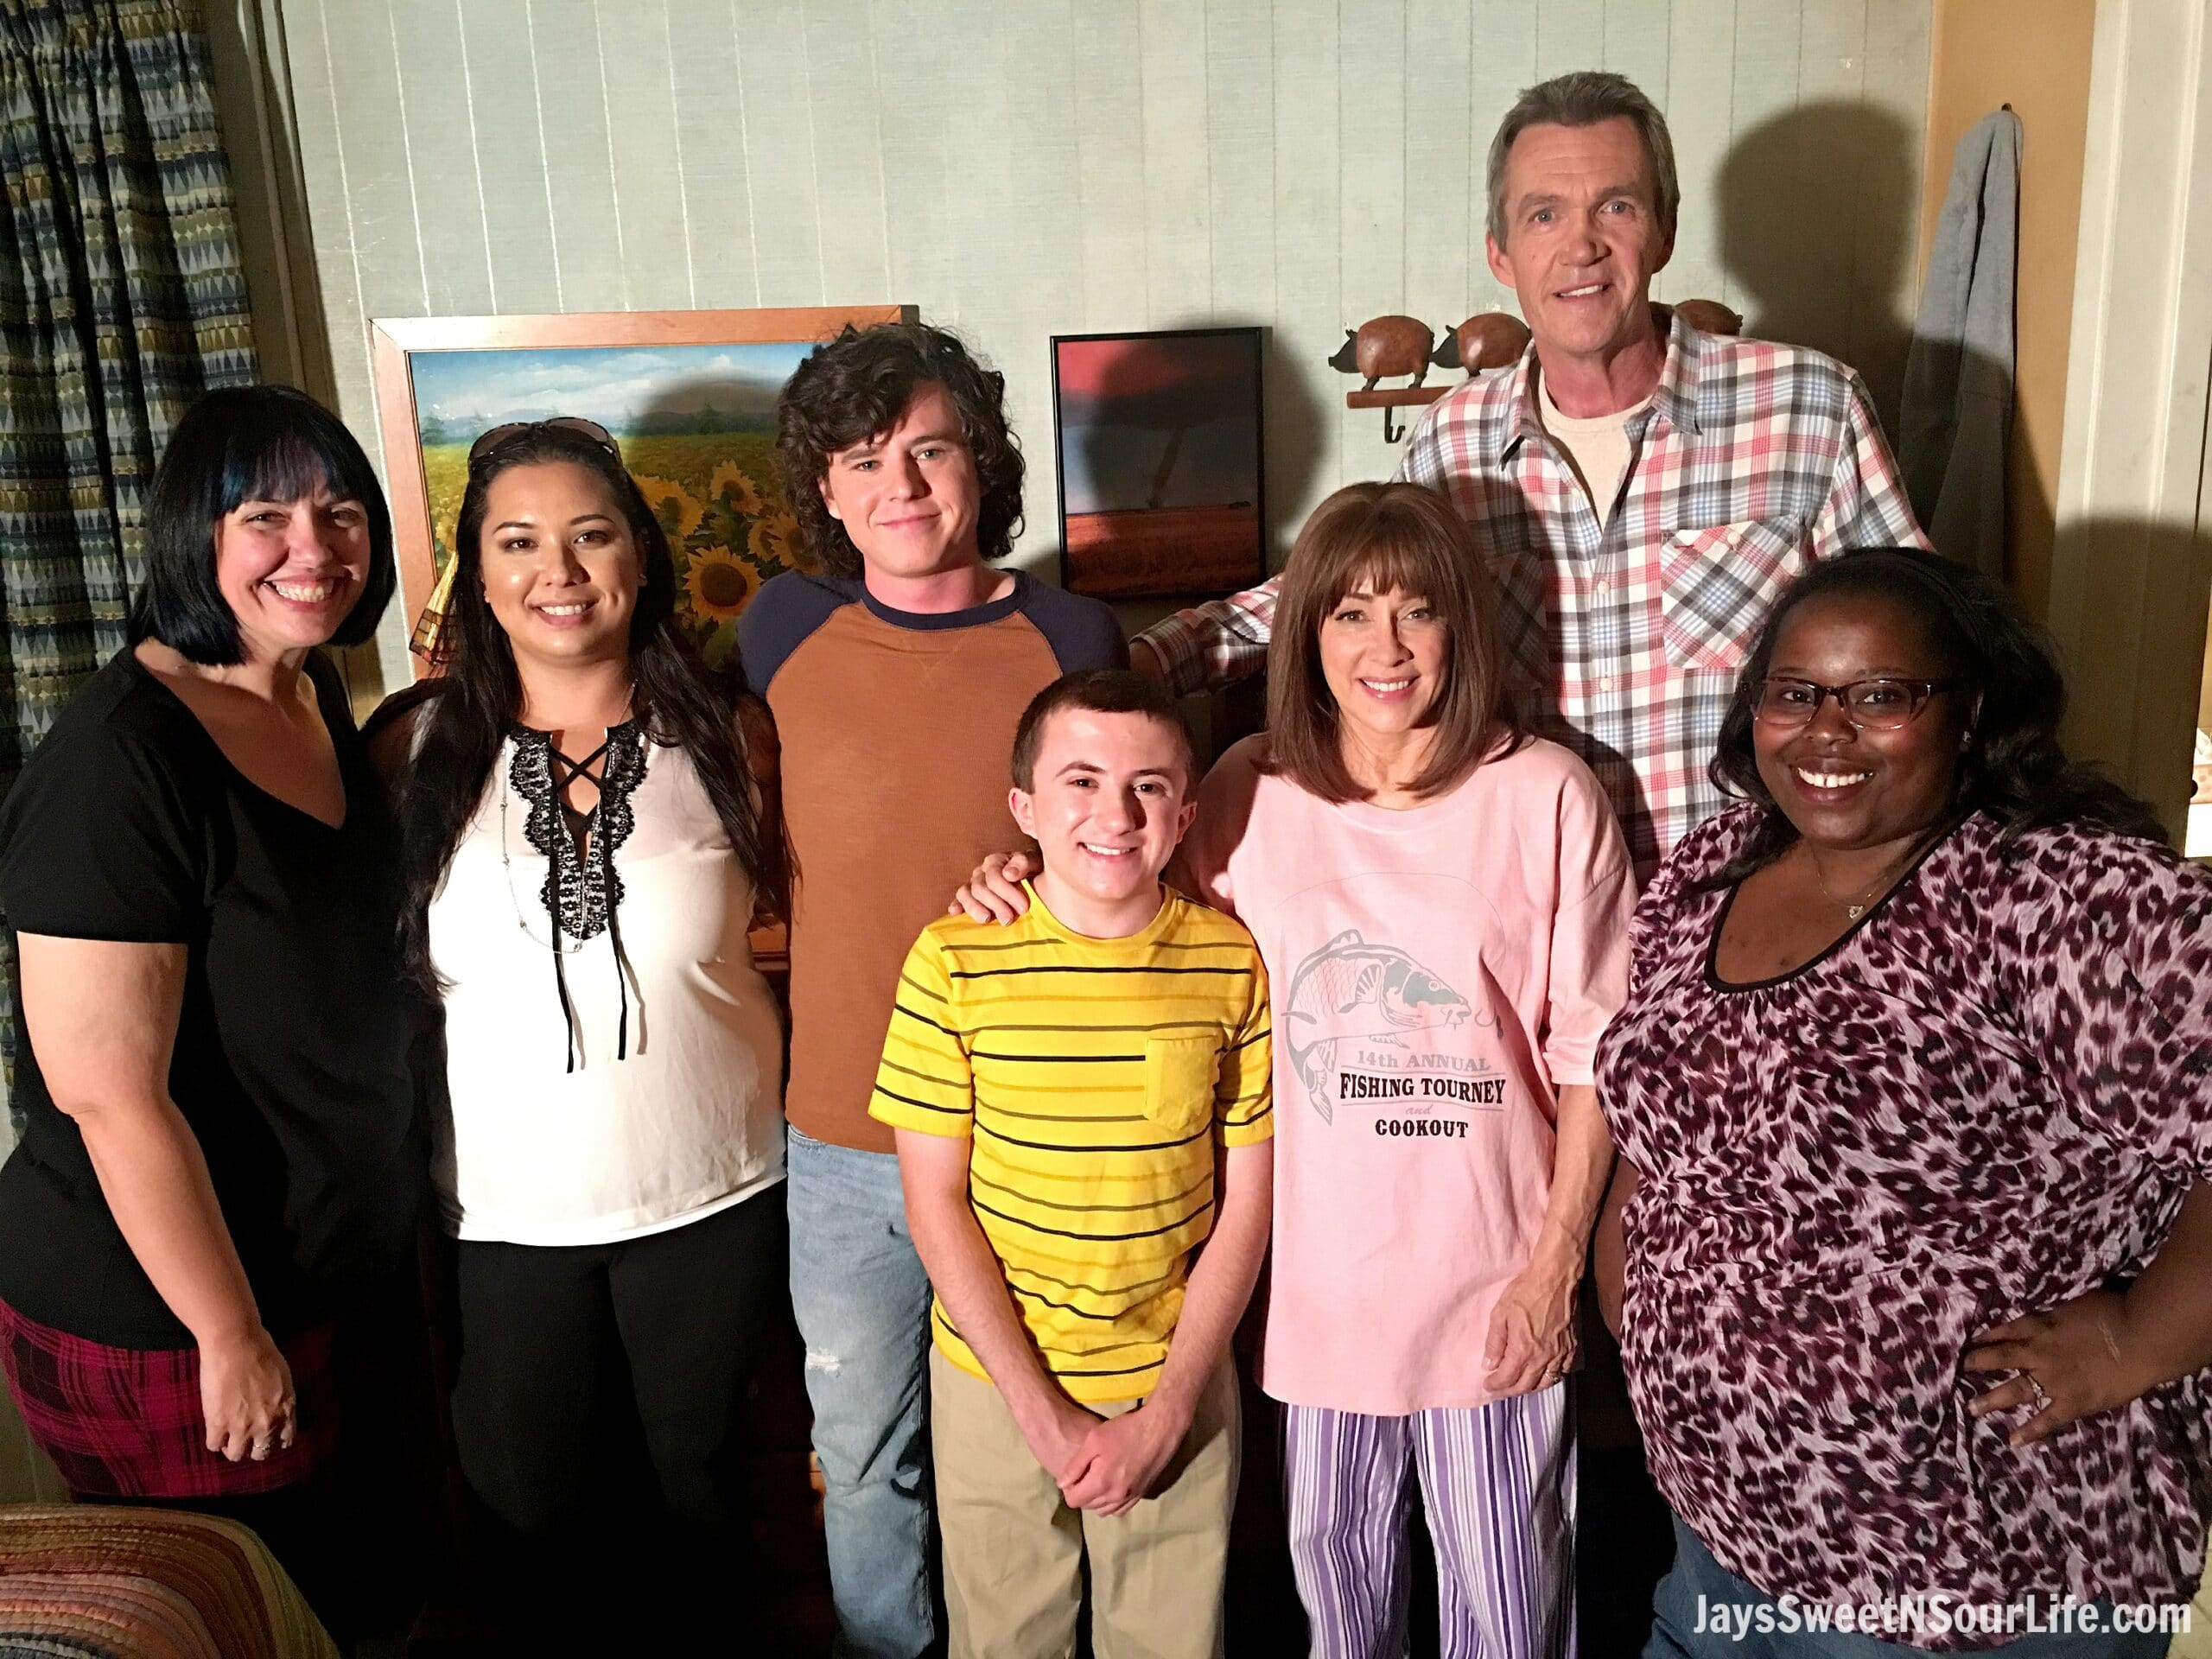 Walking The Set of The Middle + Season 8 Sneak Peek #TheMiddle #ABCTVEvent